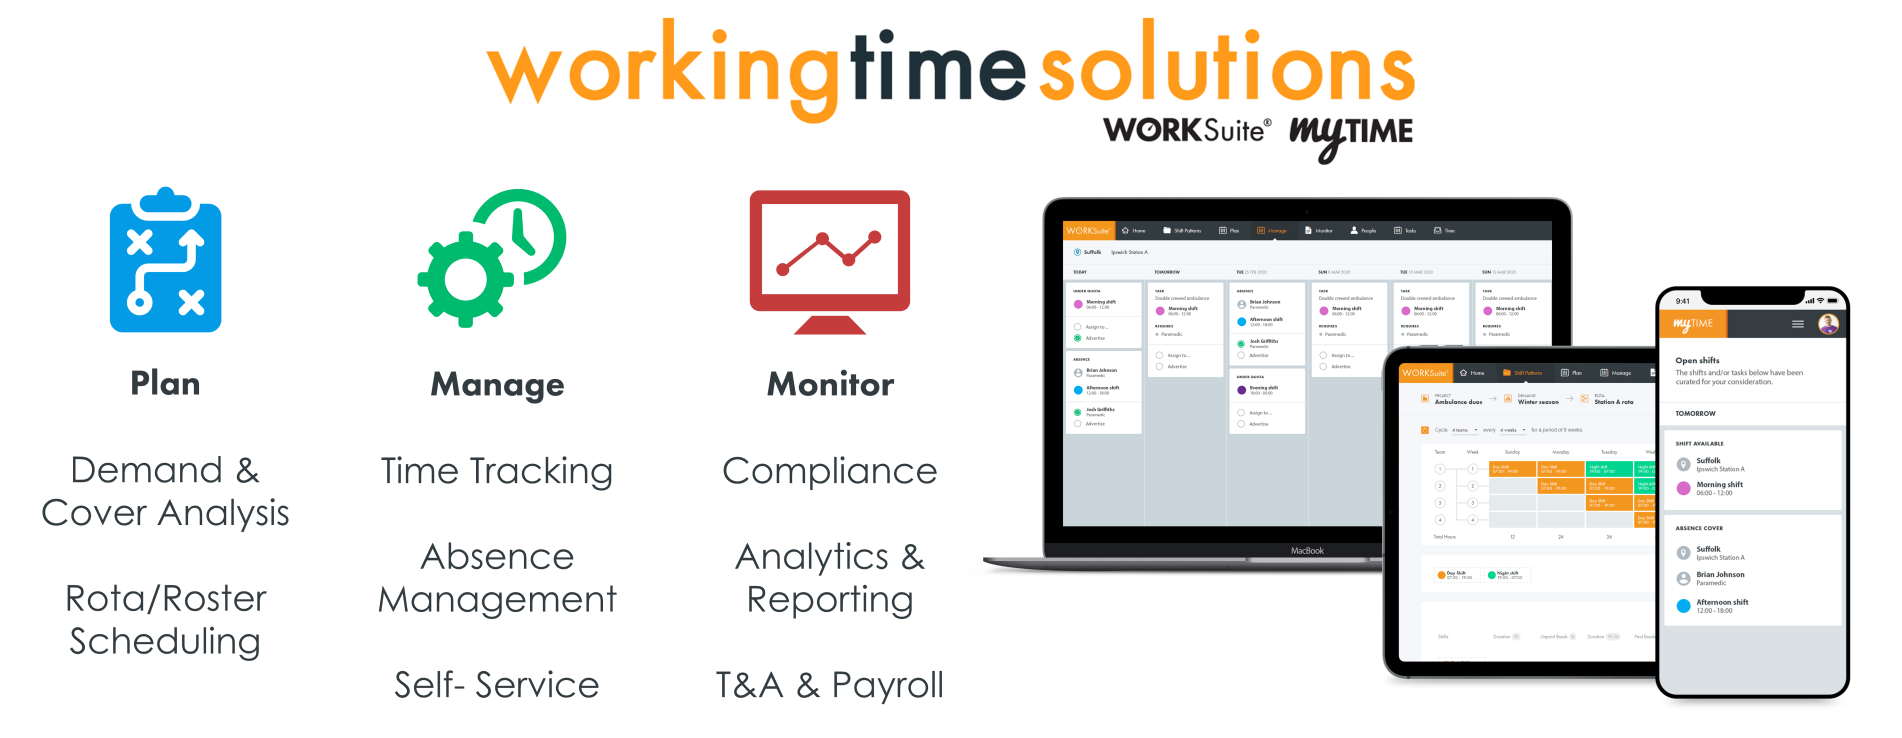 Cloud workforce management software for shift patterns scheduling rotas and rosters